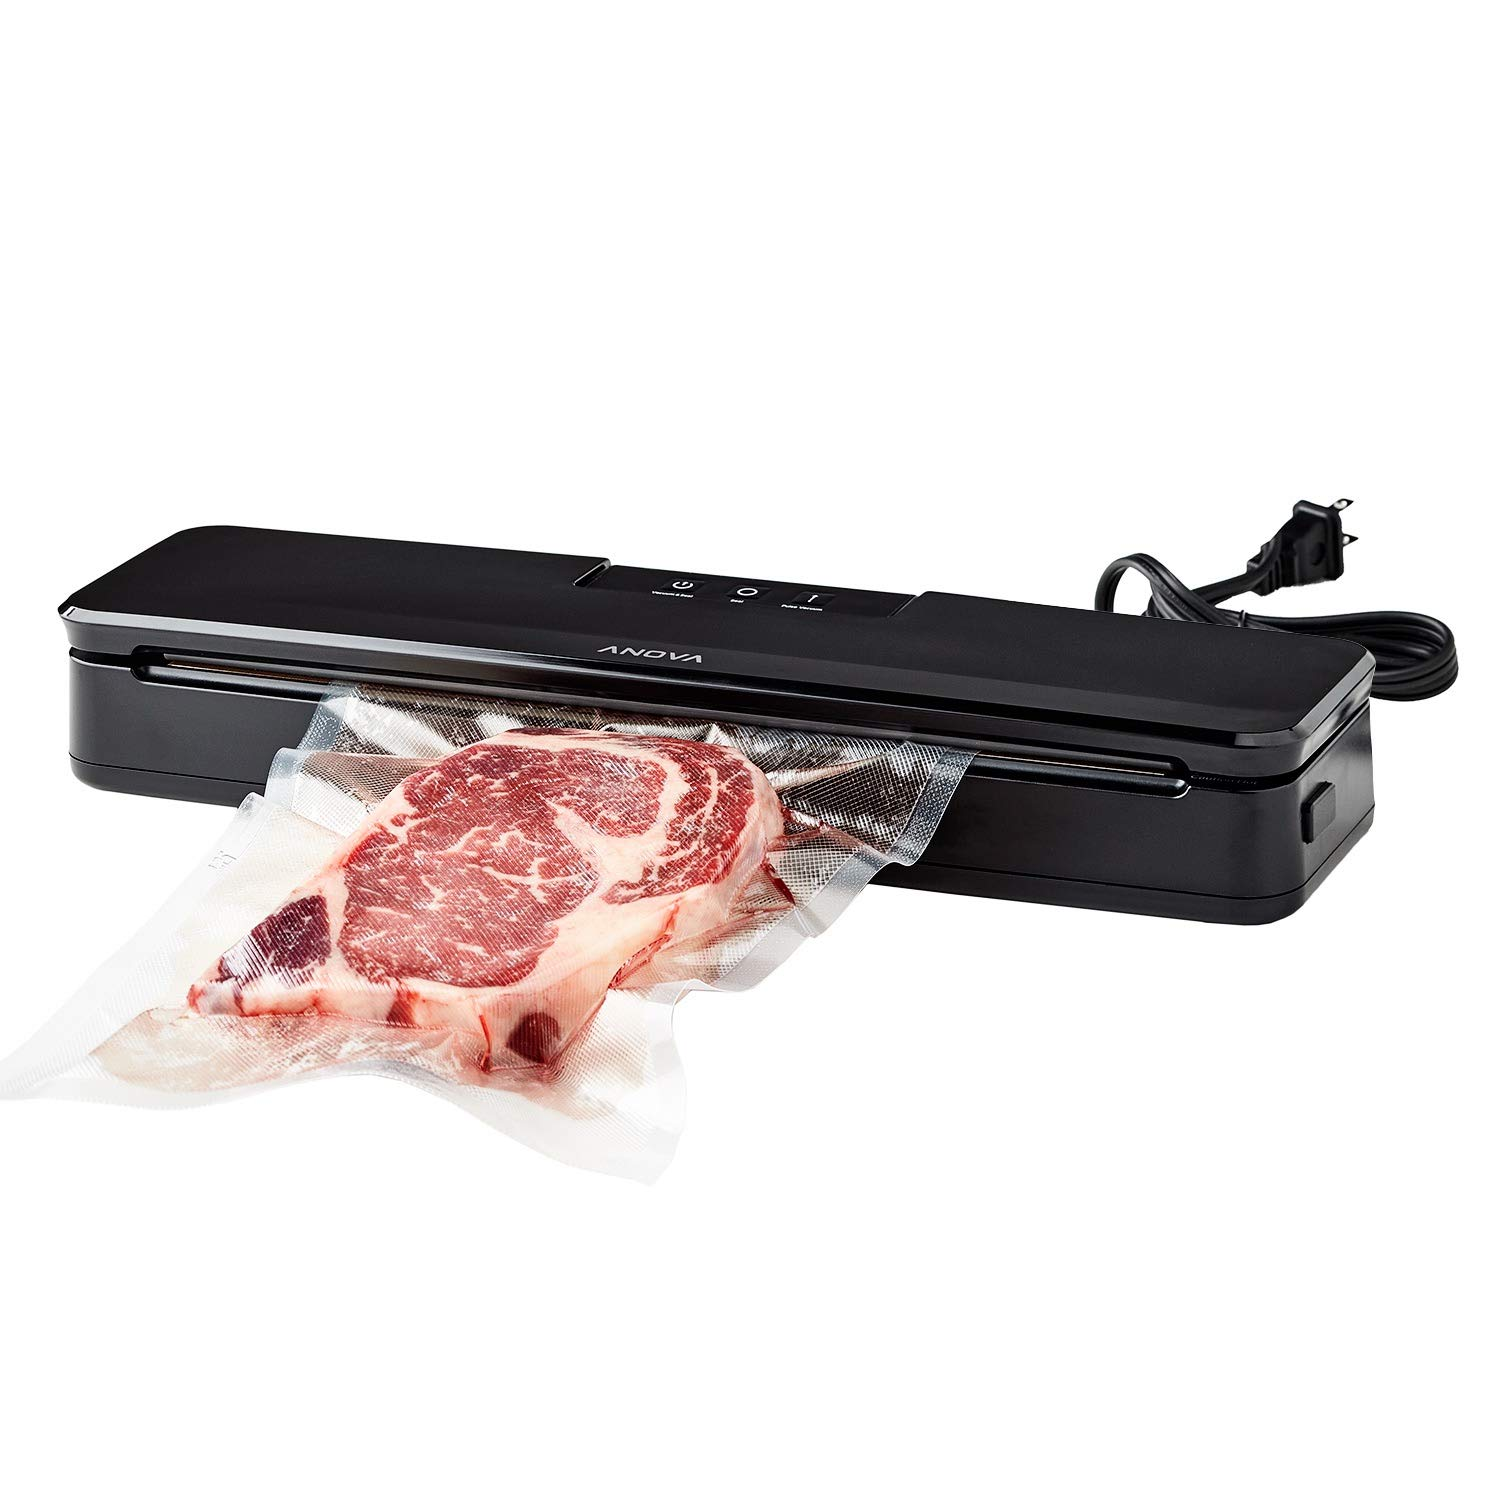 Anova Culinary ANVS01-US00 Anova Precision Vacuum Sealer, Includes 10 Precut Bags, For Sous Vide and Food Storage by Anova Culinary